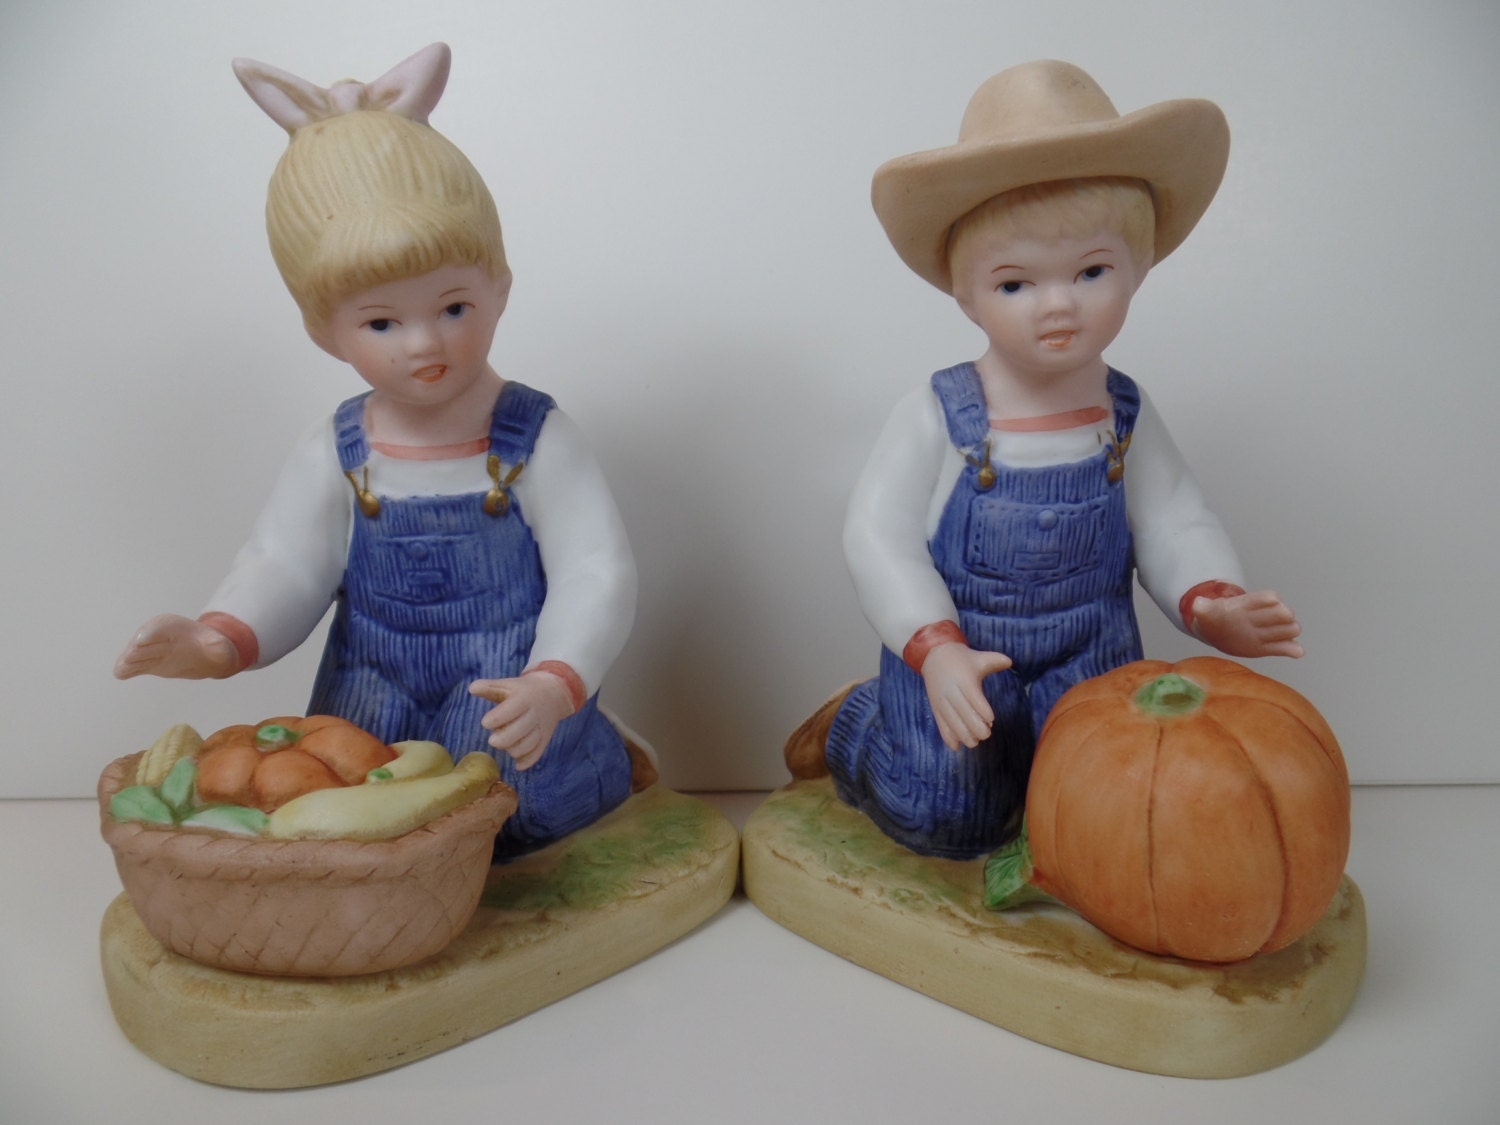 Vintage Homco Denim Days Harvest Helpers Figurines Homco